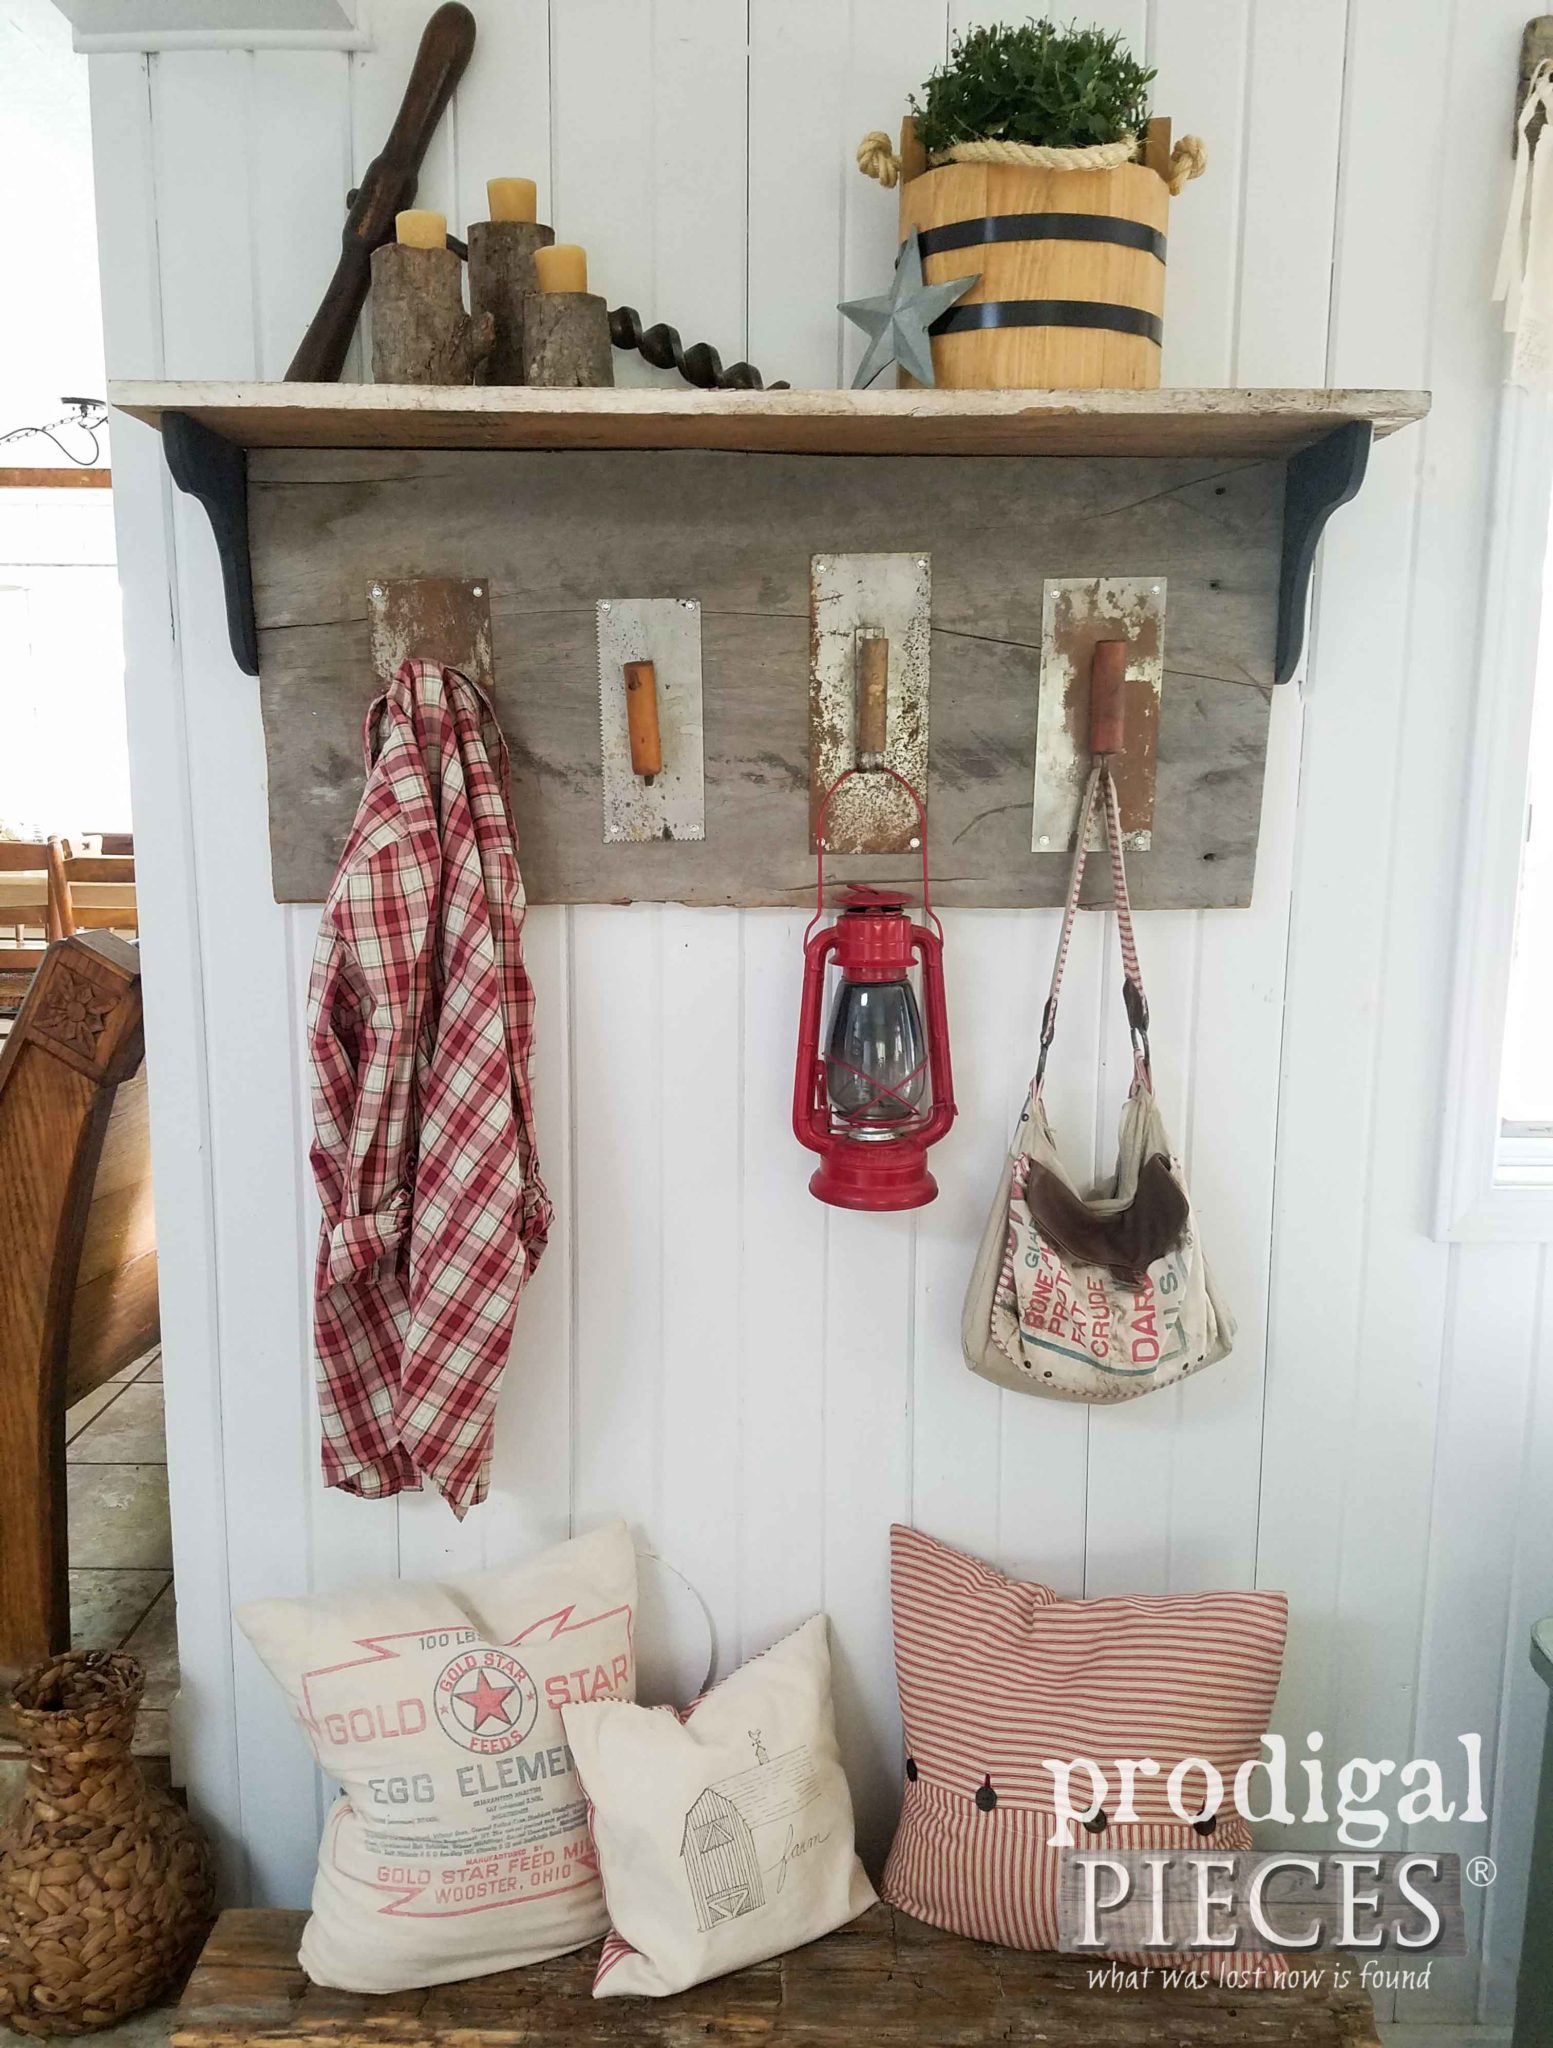 Rustic DIY coat rack made from repurposed trowels and reclaimed wood by Prodigal Pieces | prodigalpieces.com